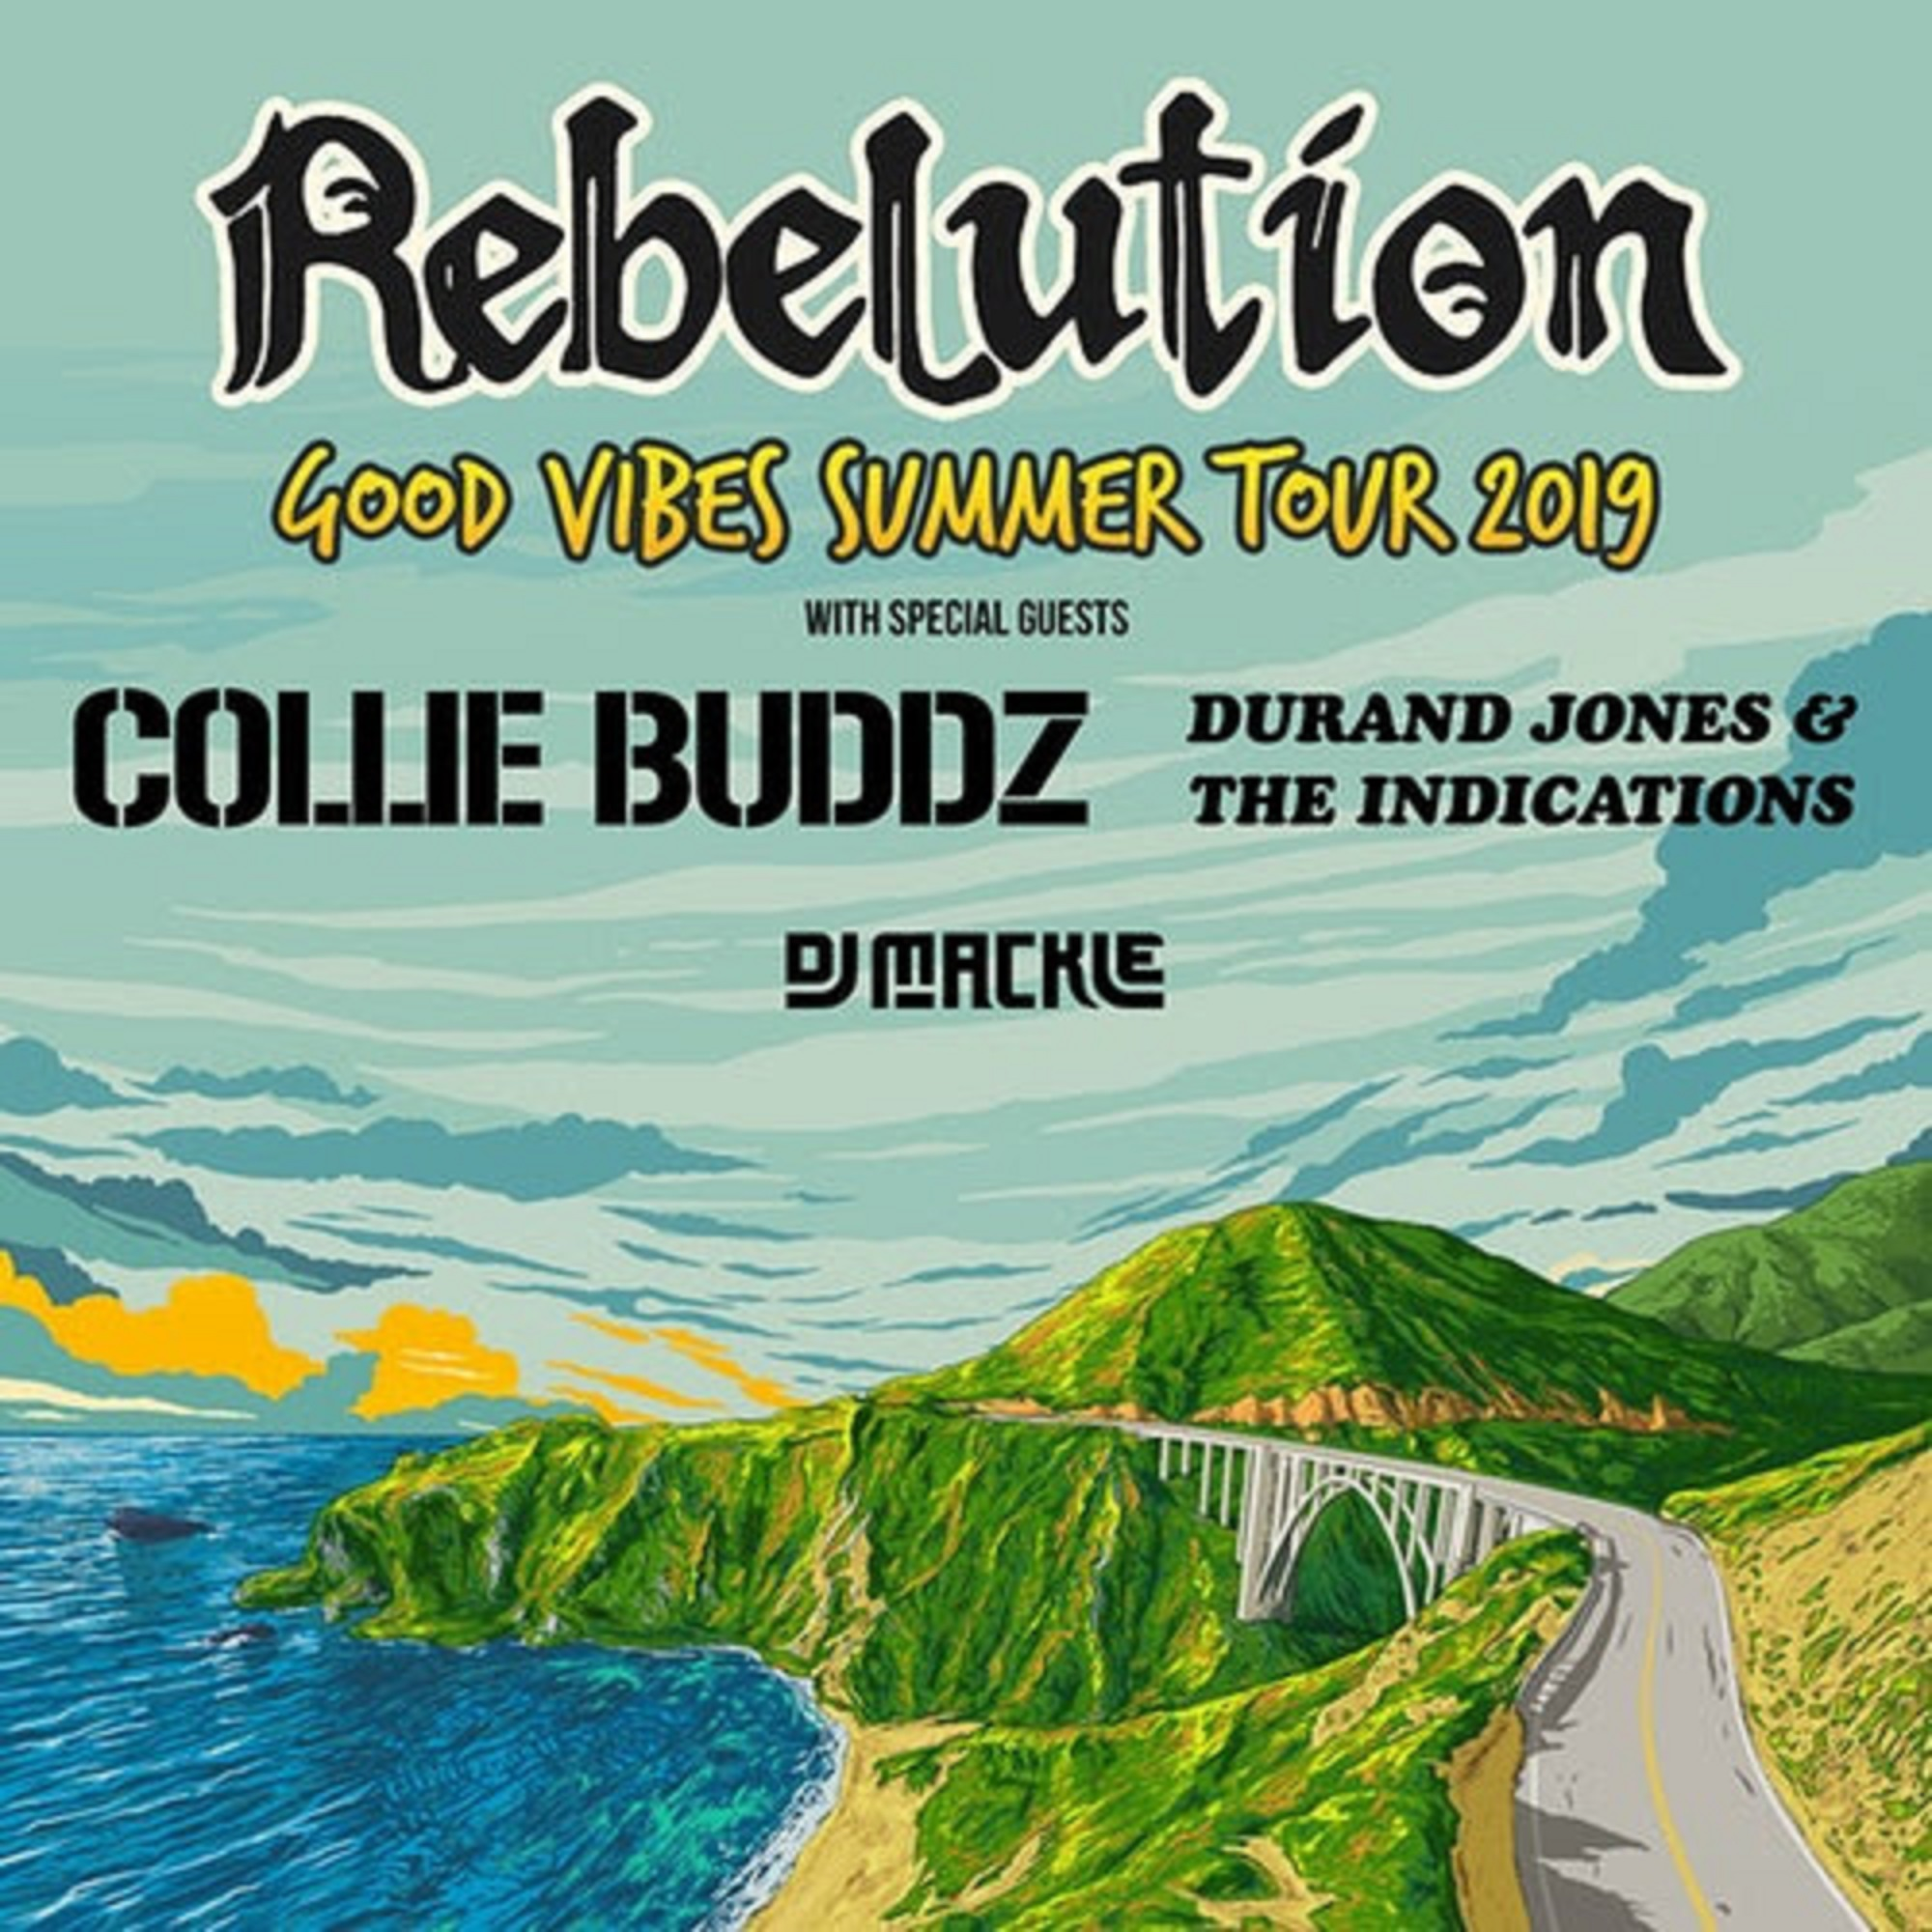 REBELUTION's Good Vibes Summer Tour Starts TODAY